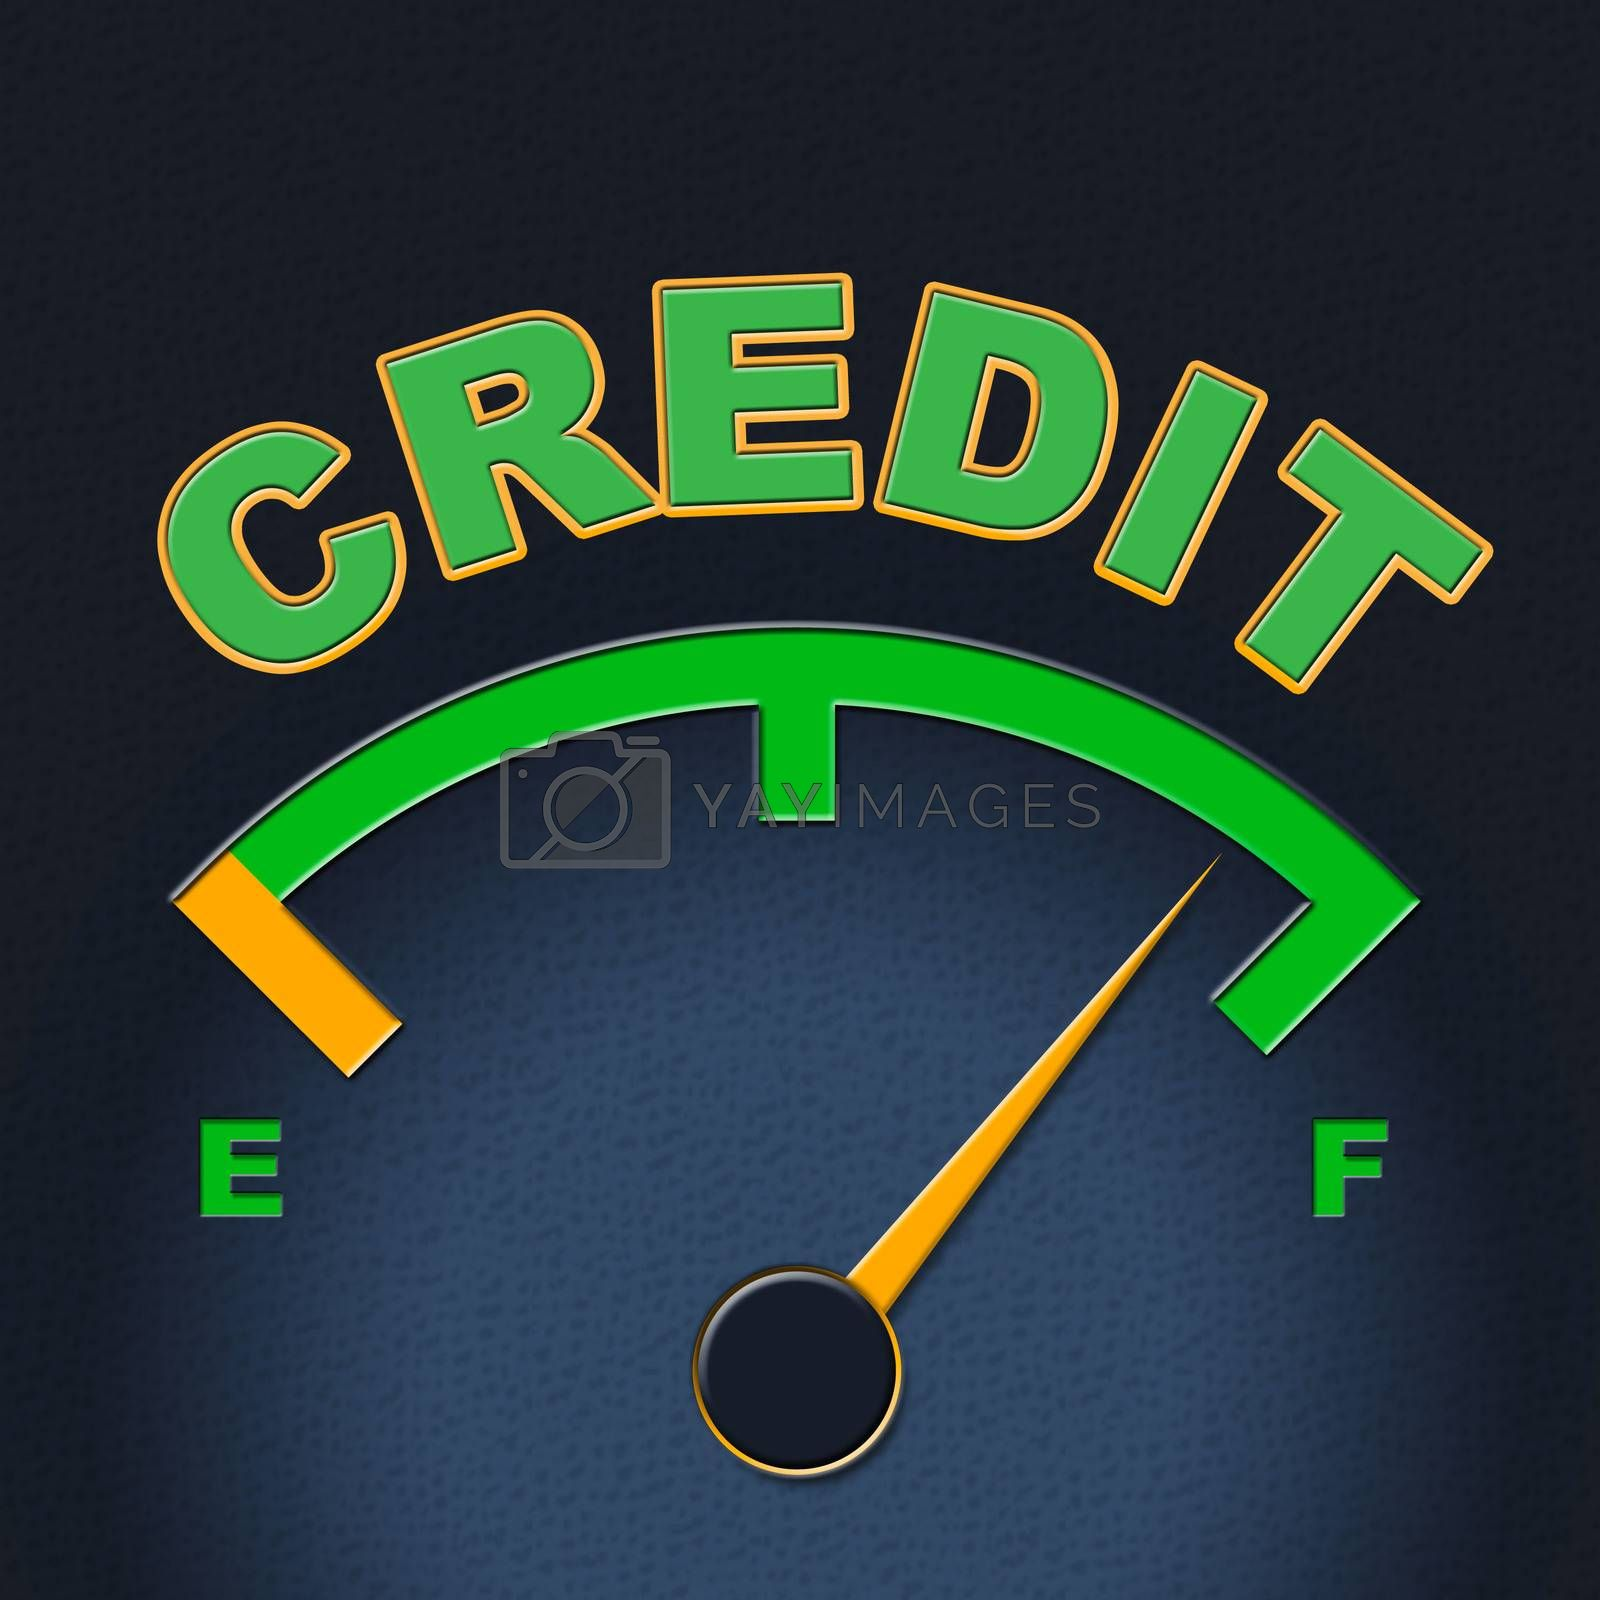 Credit Gauge Represents Debit Card And Bankcard by stuartmiles